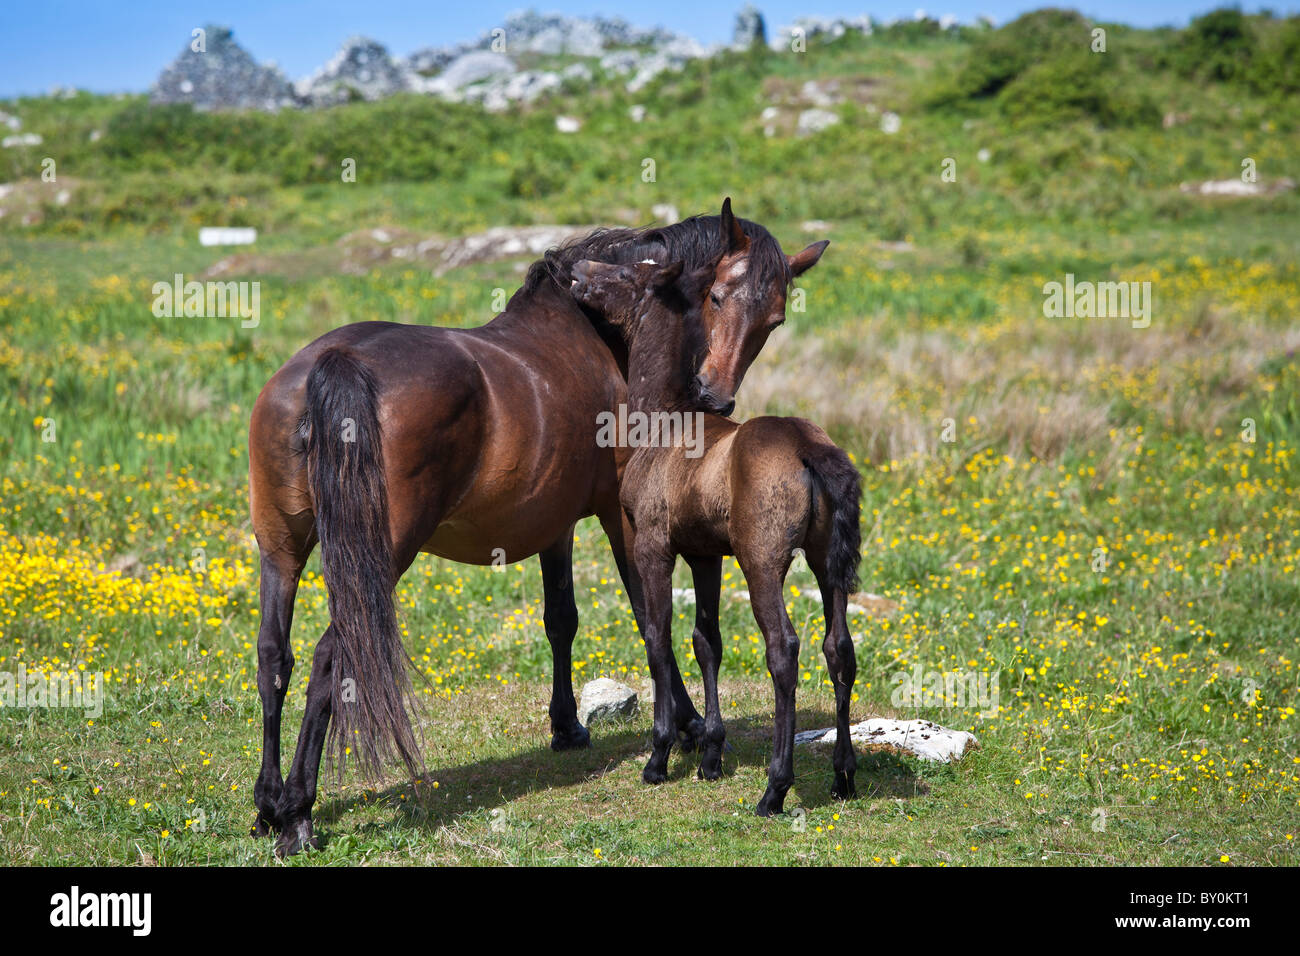 Mare and foal thoroughbred horses mutual grooming in buttercup meadow, Connemara, County Galway, Ireland - Stock Image